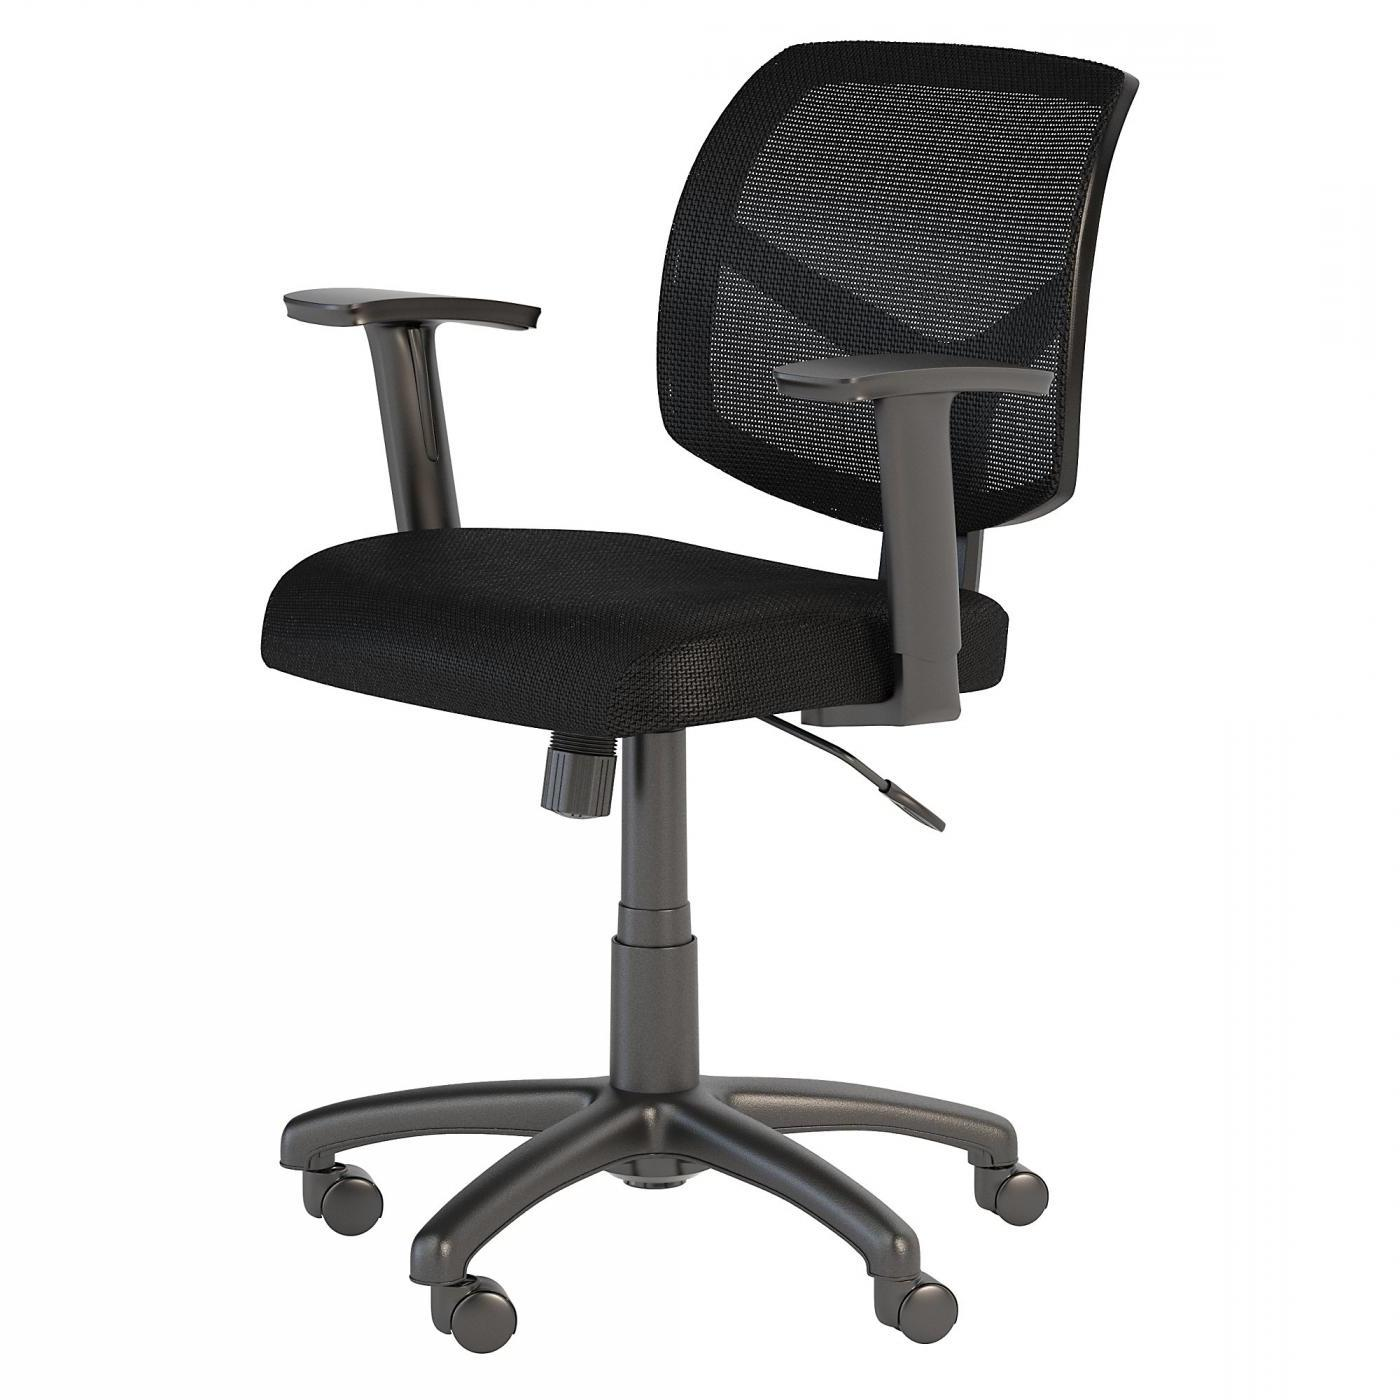 <font color=#c60><b>BUSH BUSINESS FURNITURE PETITE MESH BACK OFFICE CHAIR. FREE SHIPPING</font></b> </font></b>